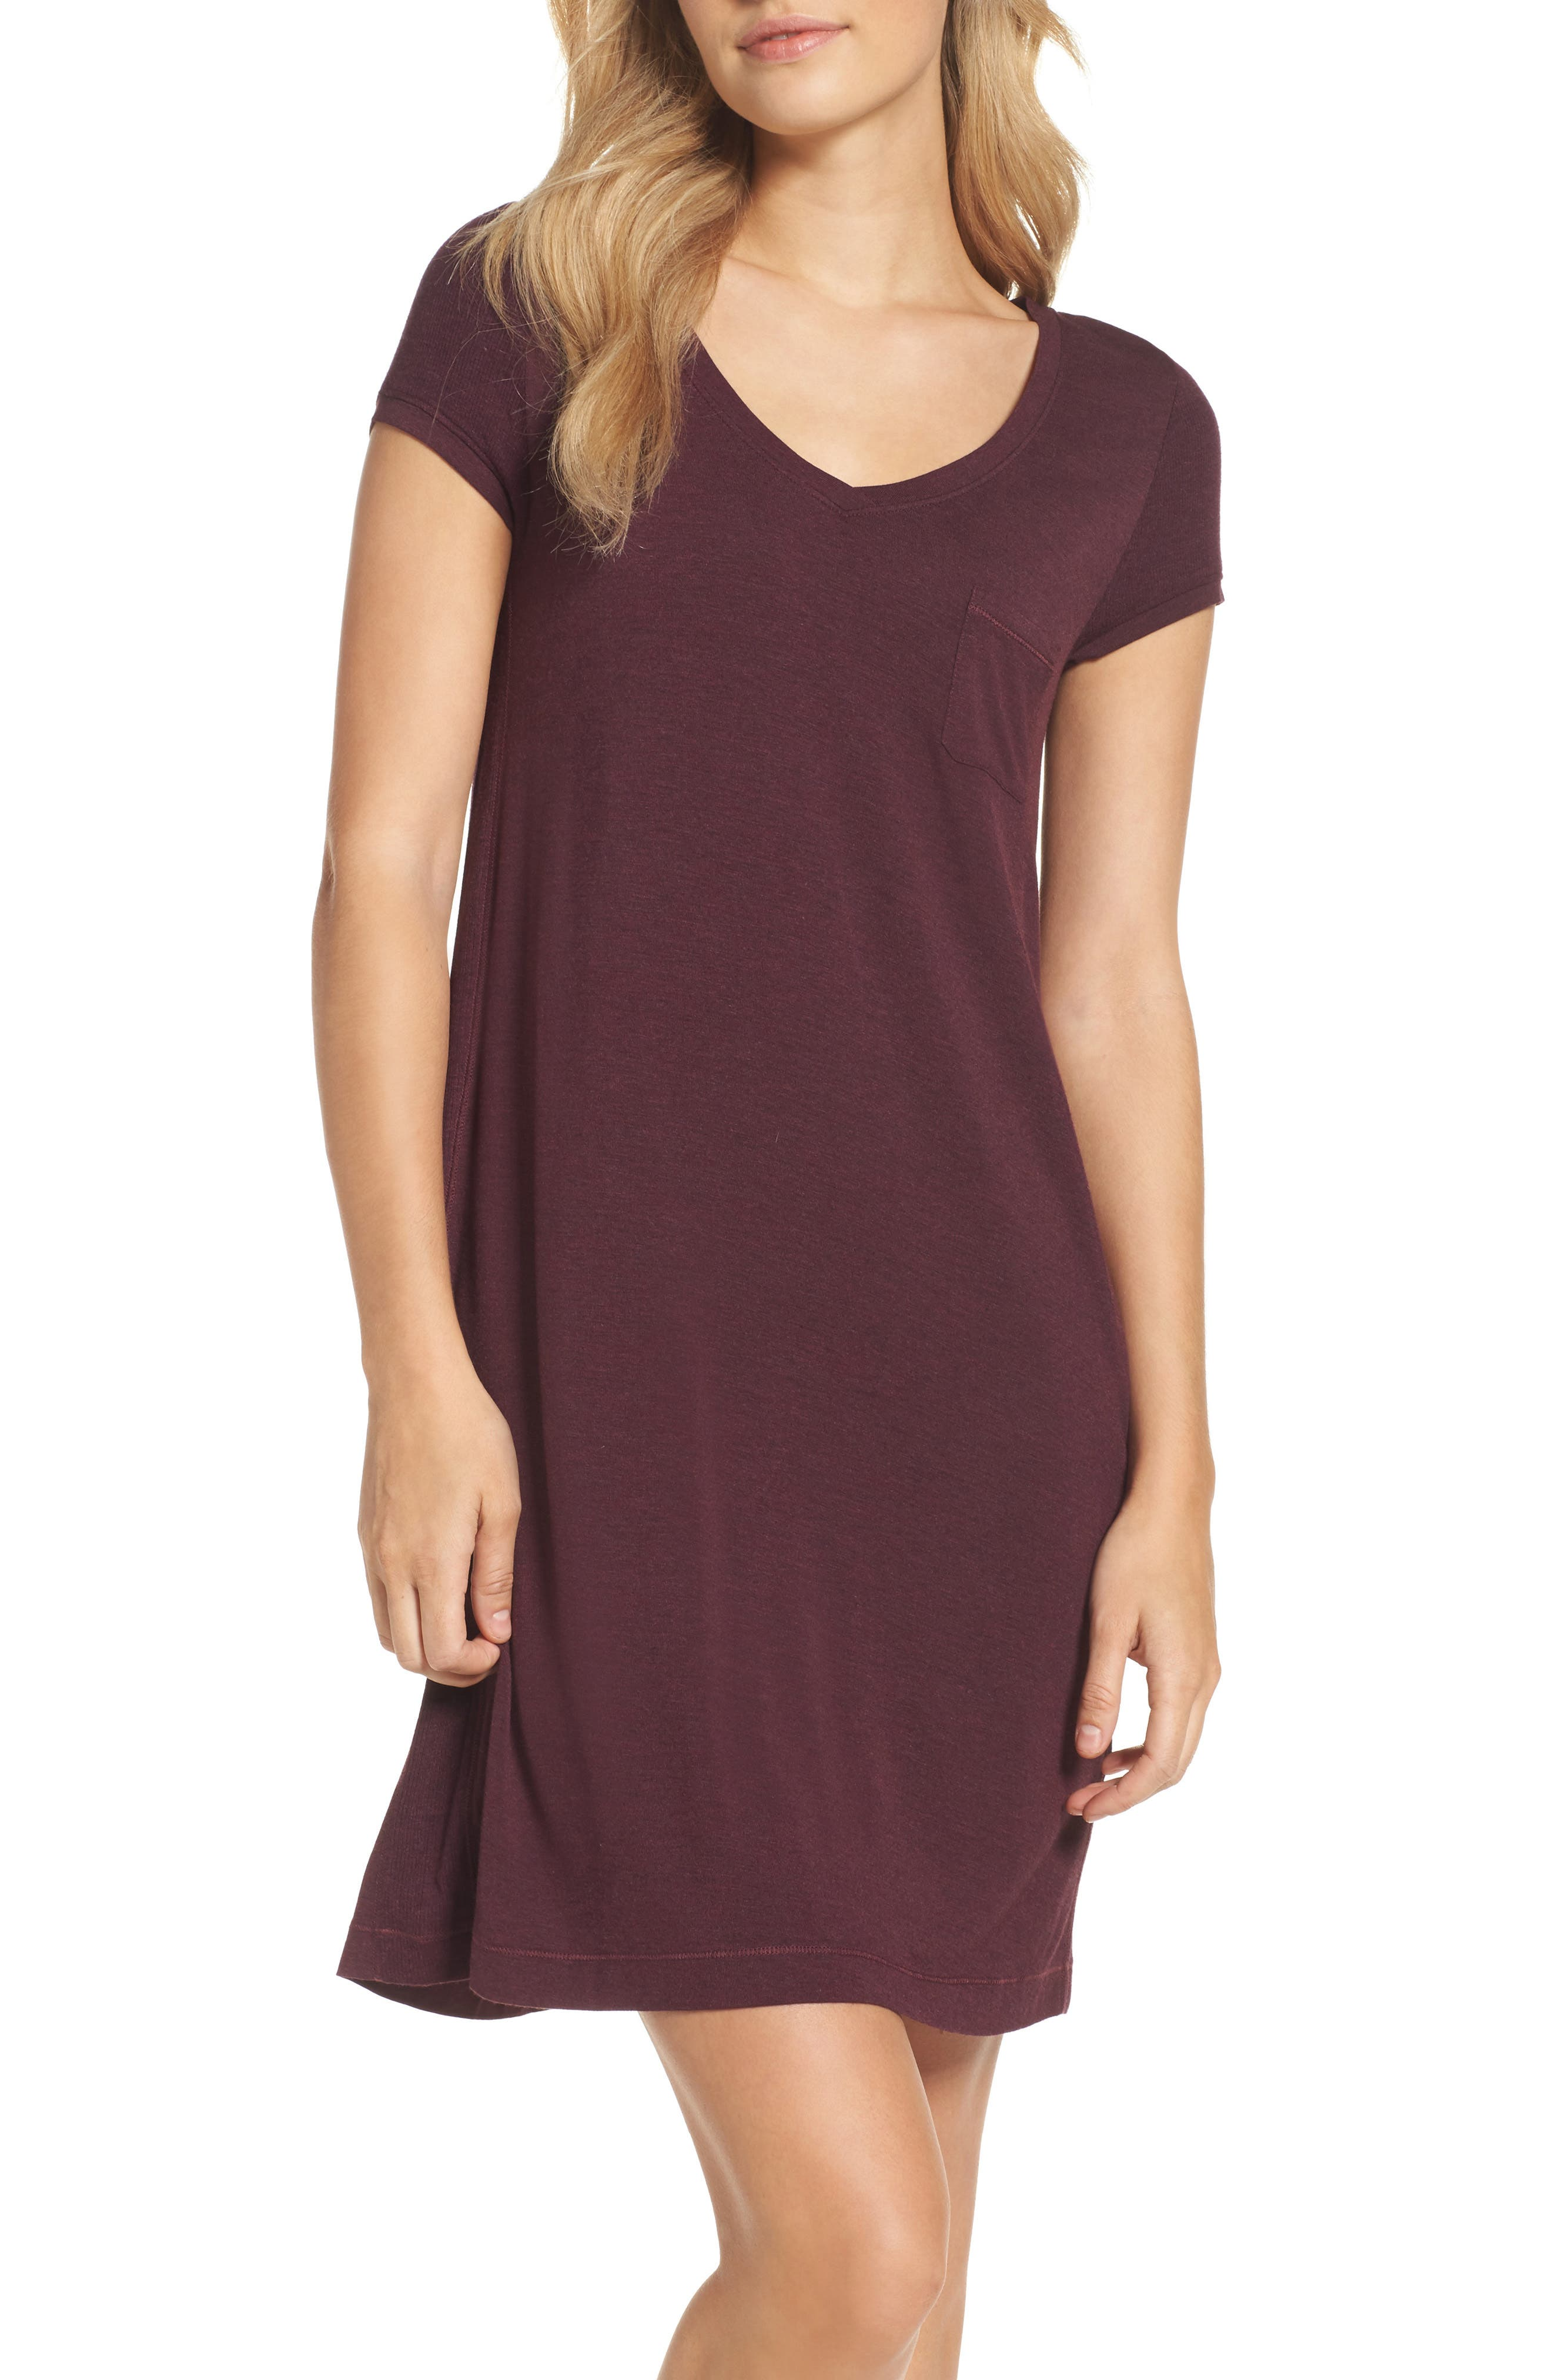 Jersey Nightgown,                         Main,                         color, Burgundy